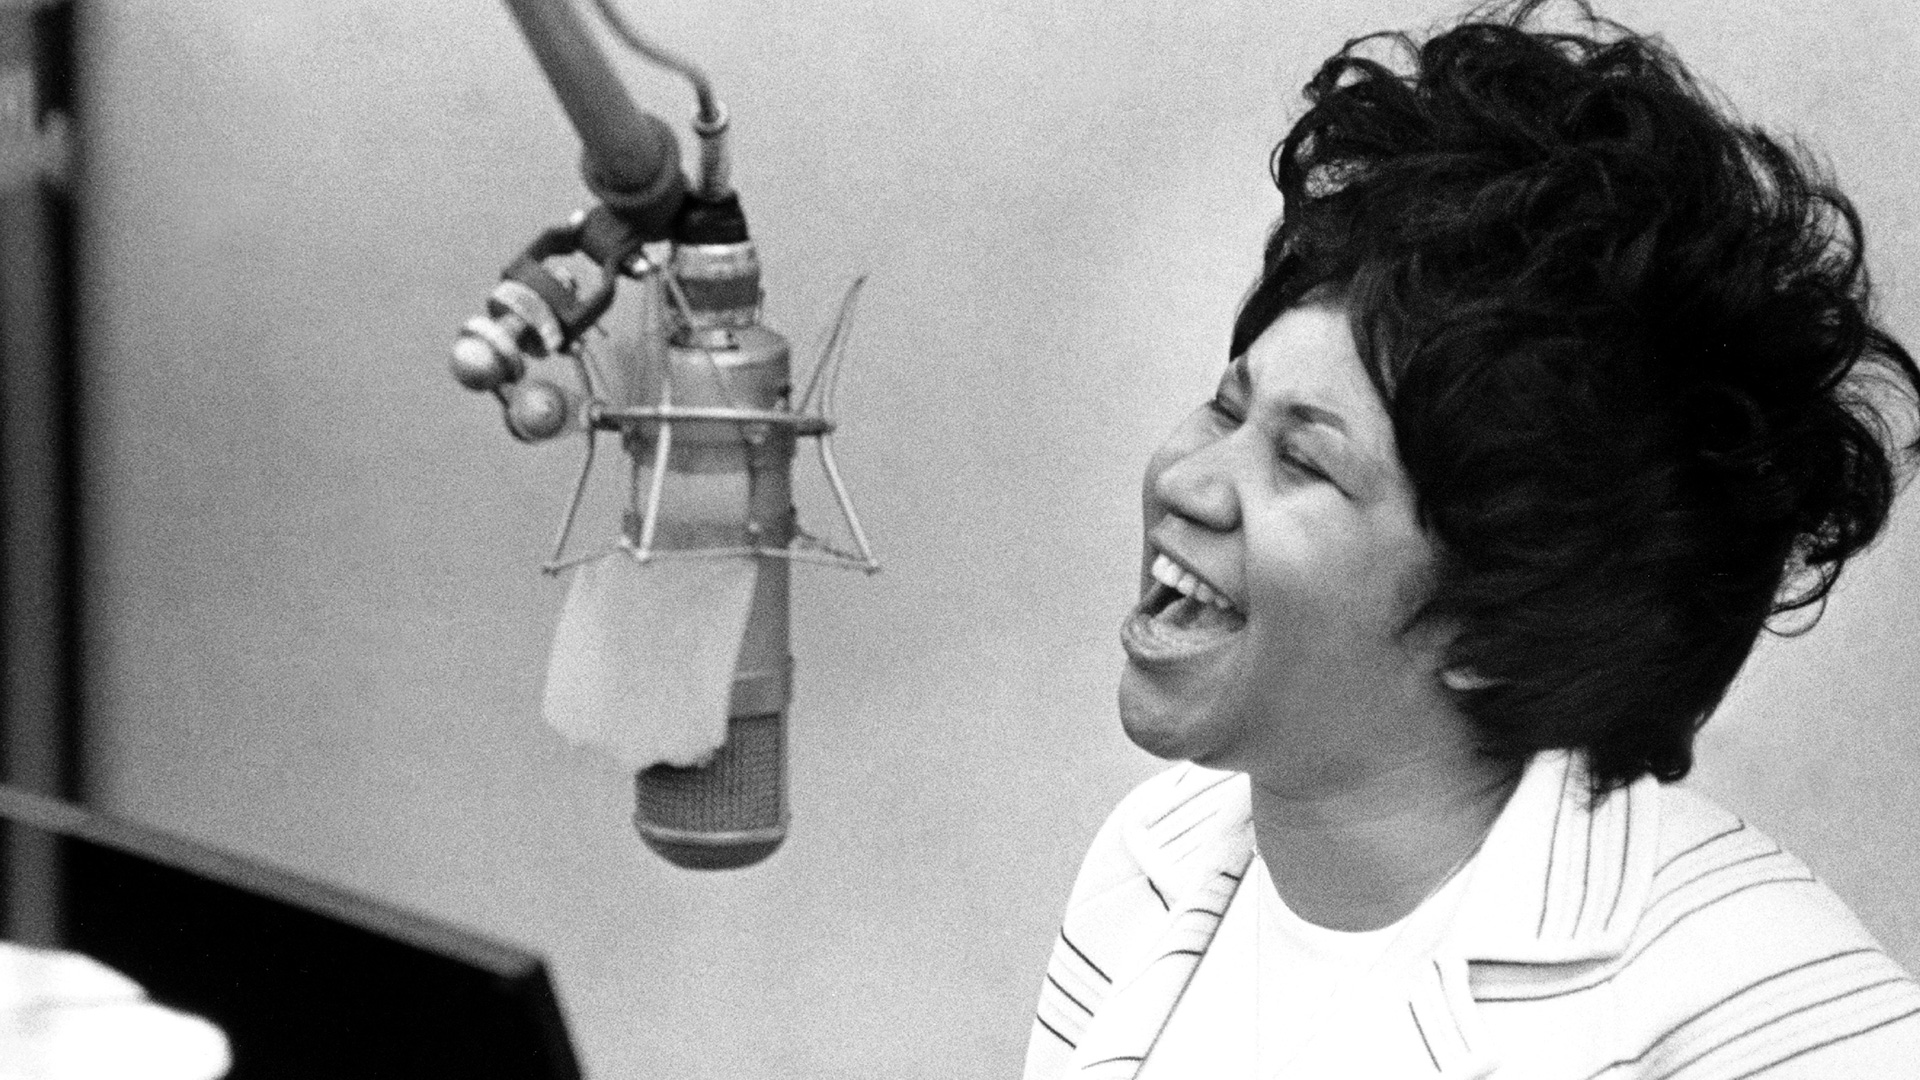 January 3, 1987: Aretha Franklin Became the First Female Artist Inducted Into the Rock and Roll Hall of Fame